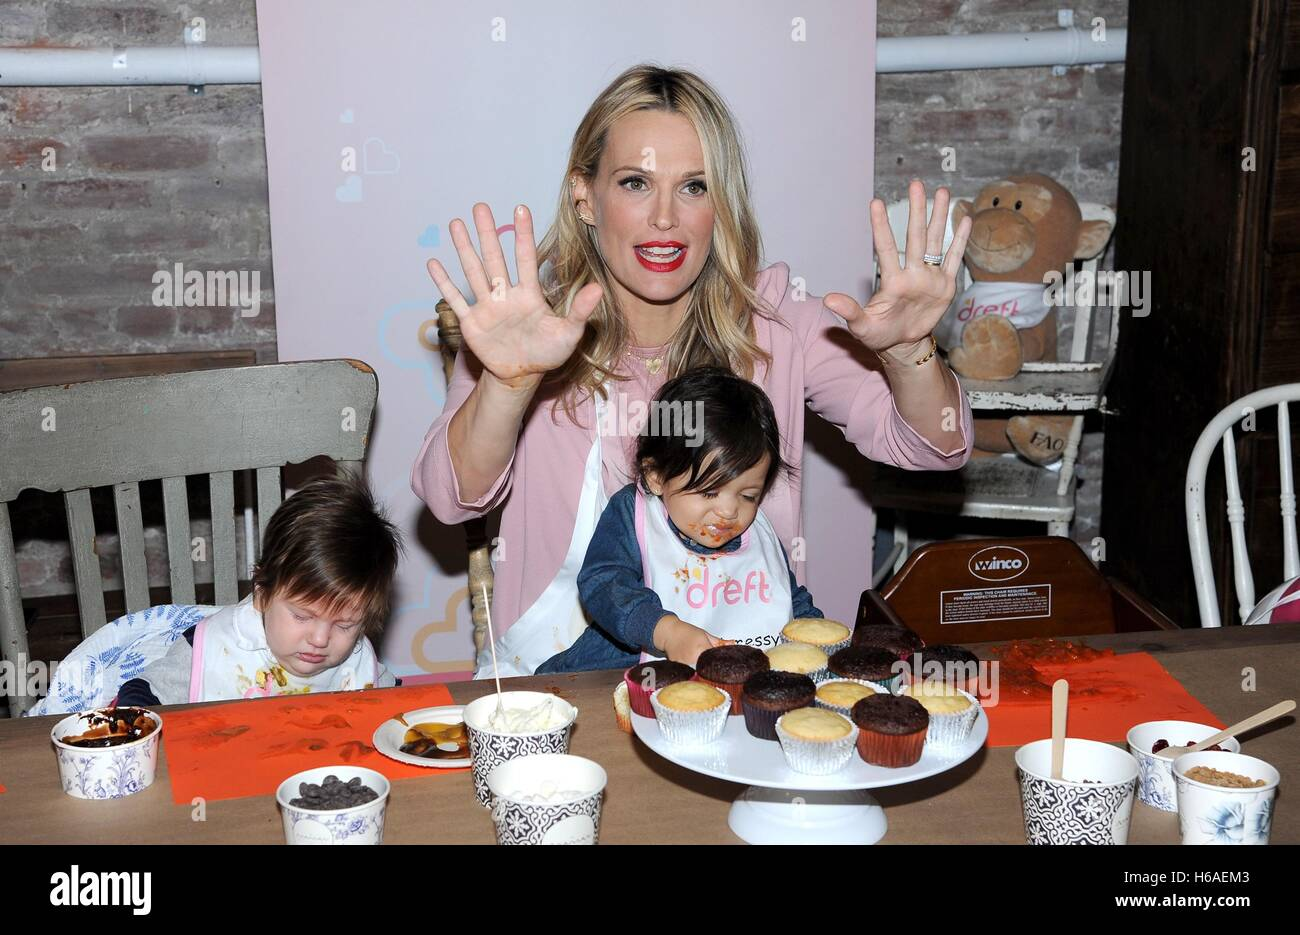 New York, NY, USA. 25th Oct, 2016. Molly Sims at a public appearance for Dreft Unveils Launch Of America's Messiest - Stock Image